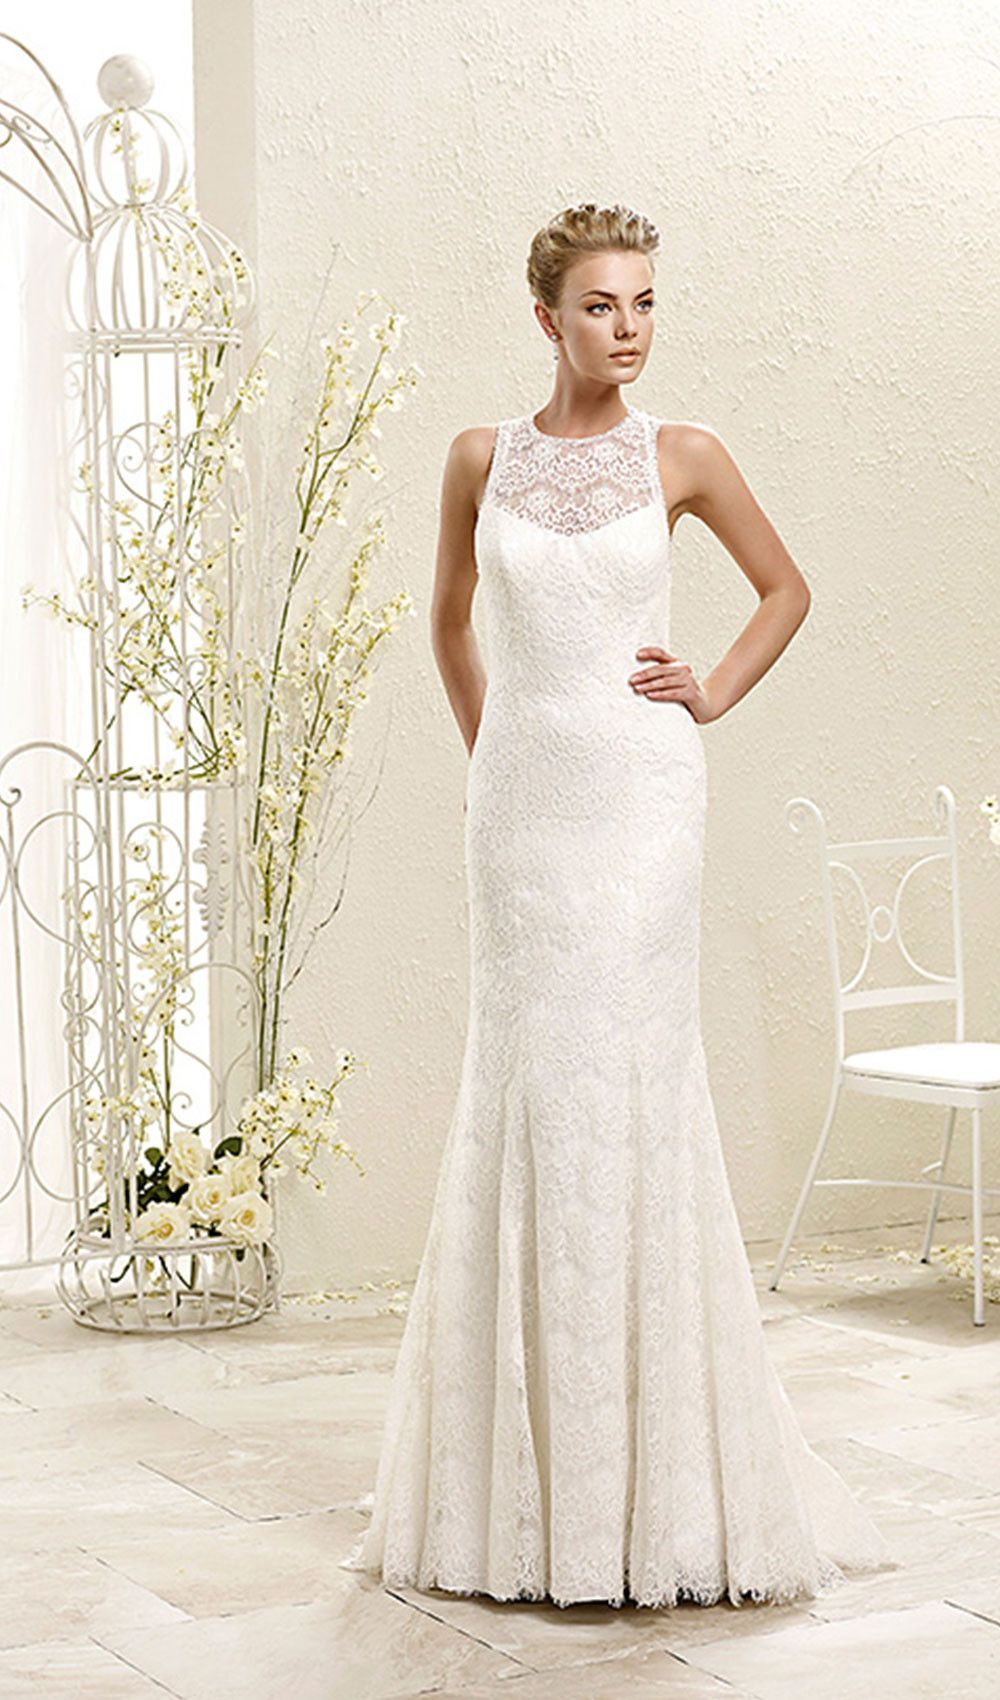 Try this beautiful lace wedding dress from eddy k bridal try this beautiful lace wedding dress from eddy k bridal available at schaffers in scottsdale ombrellifo Gallery